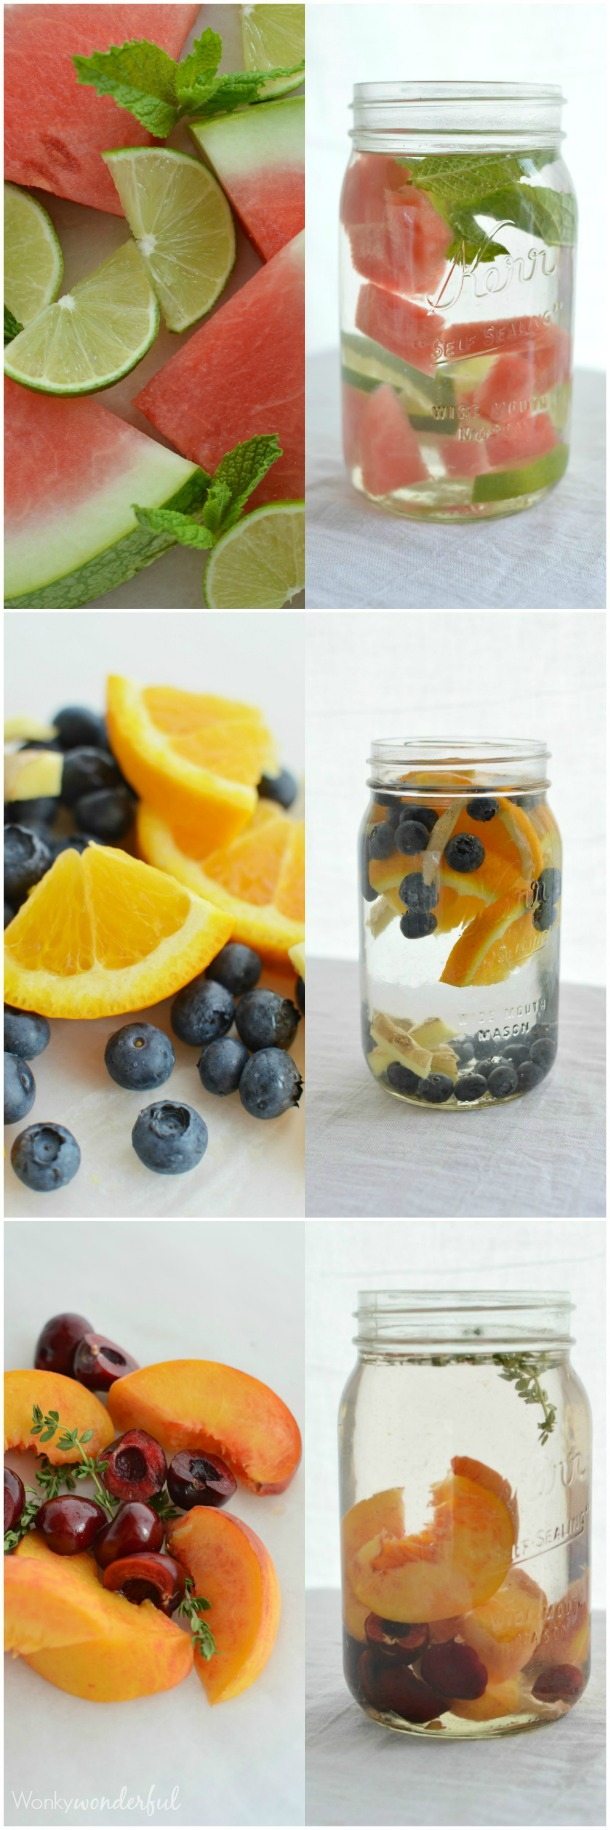 Naturally Flavored Water Infused with Fruit and Herbs : Healthy Drink : Homemade Vitamin Water #whole30recipes #paleorecipes #veganrecipes